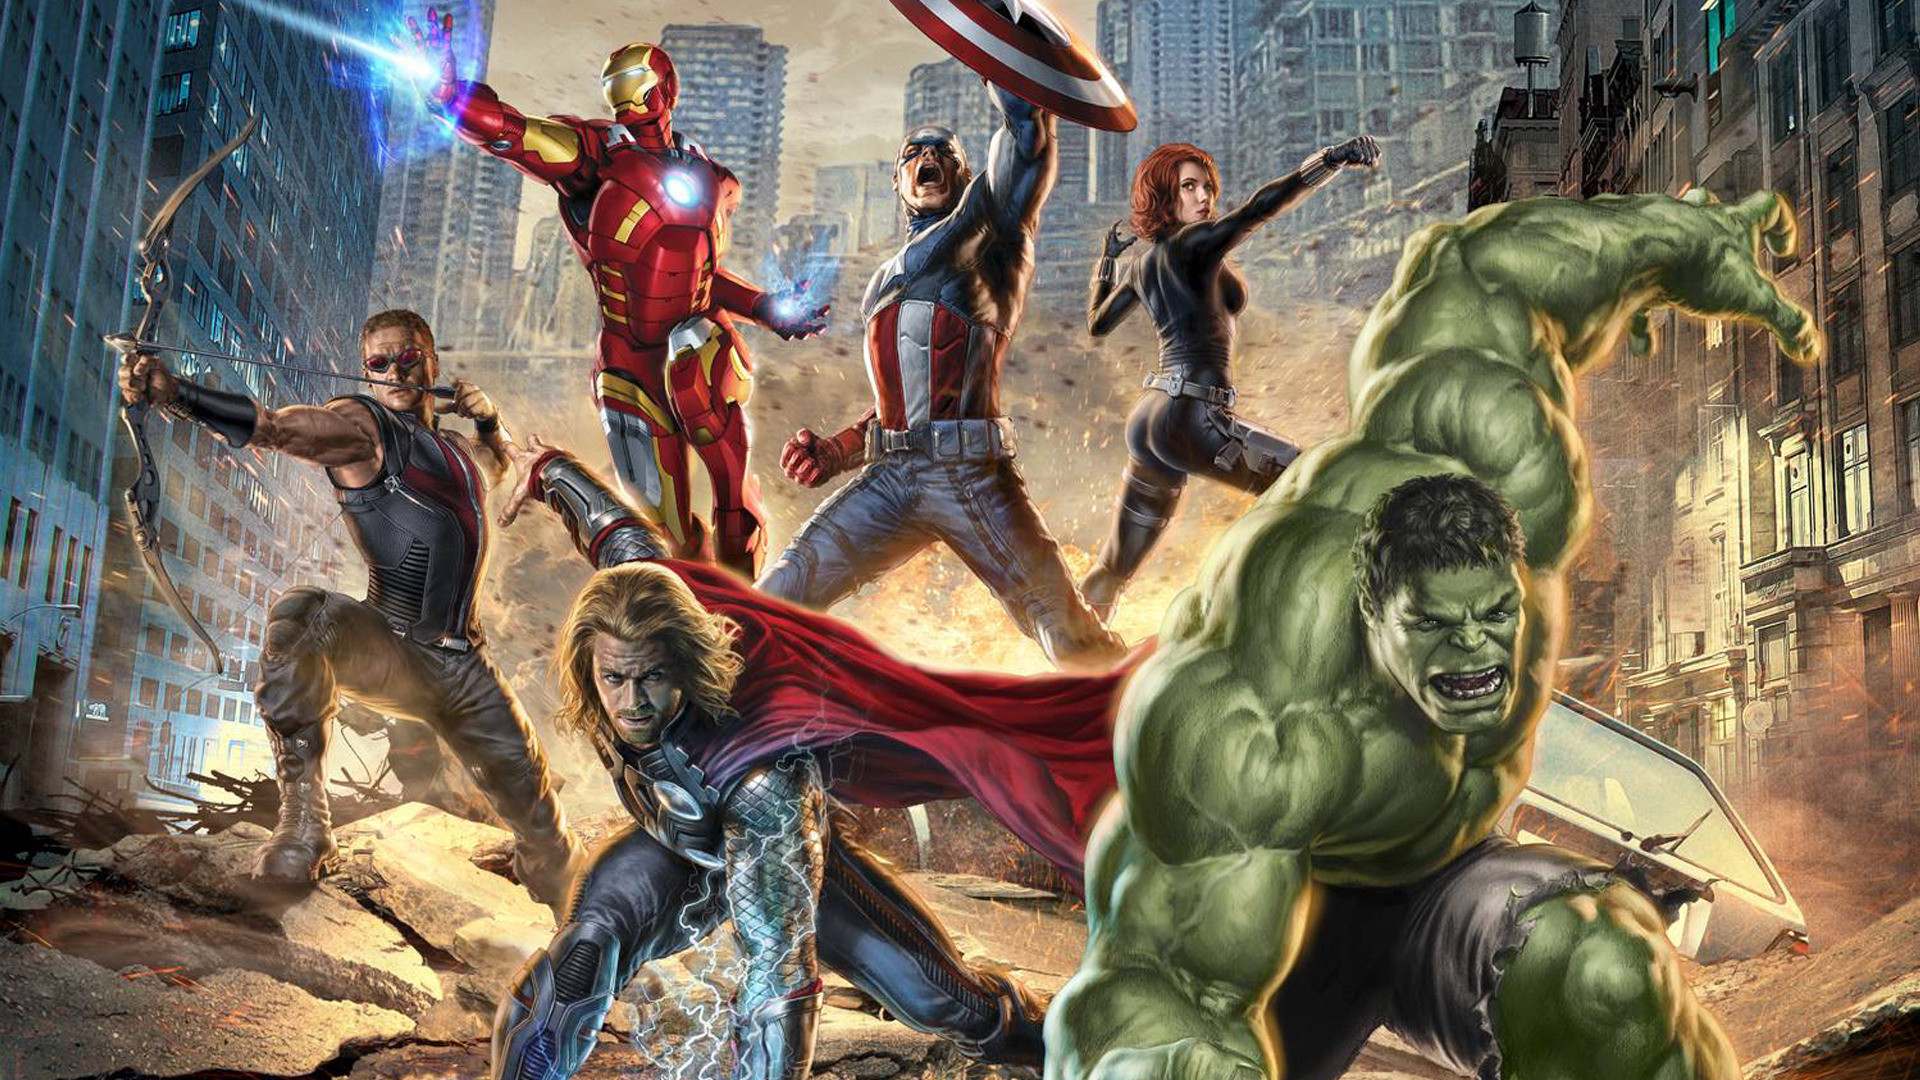 … Avengers Hd Wallpaper Collection